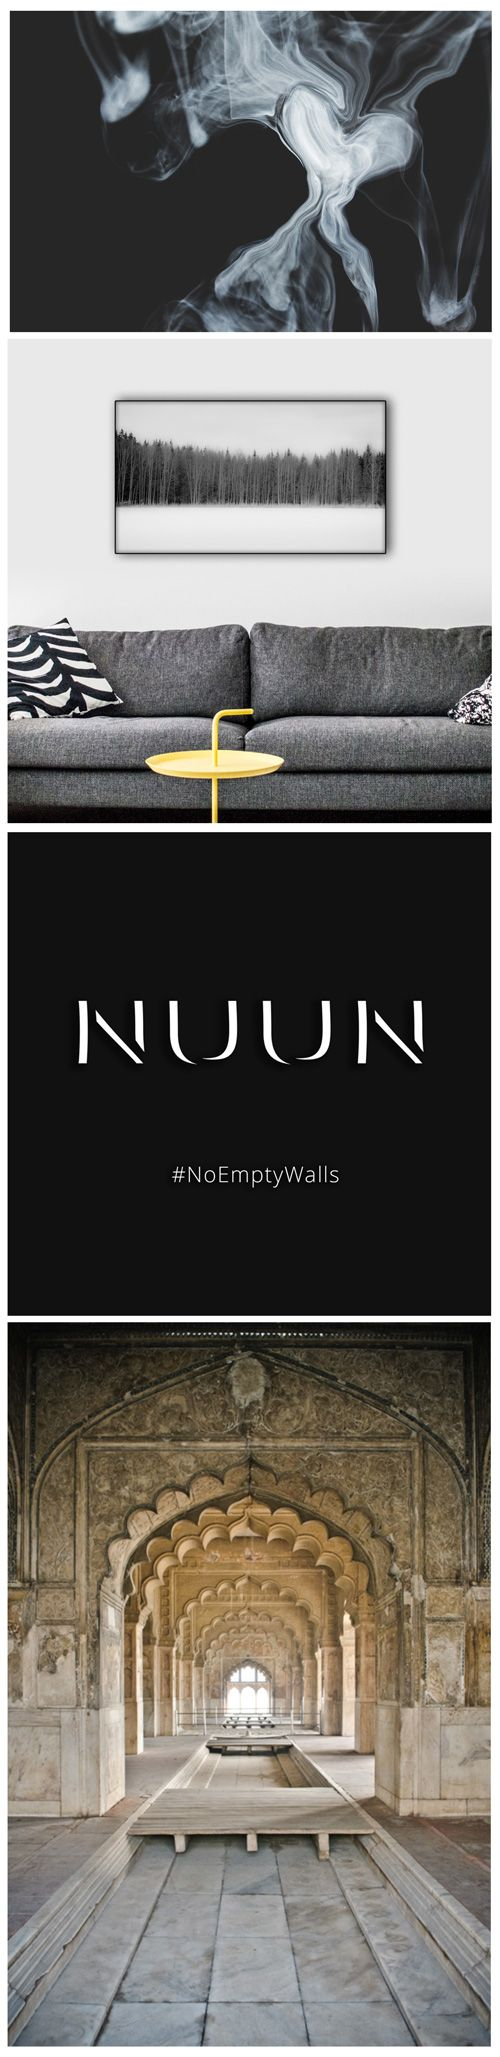 Our NEW WEBSTORE is now online at www.nuun.fi! Check it out!